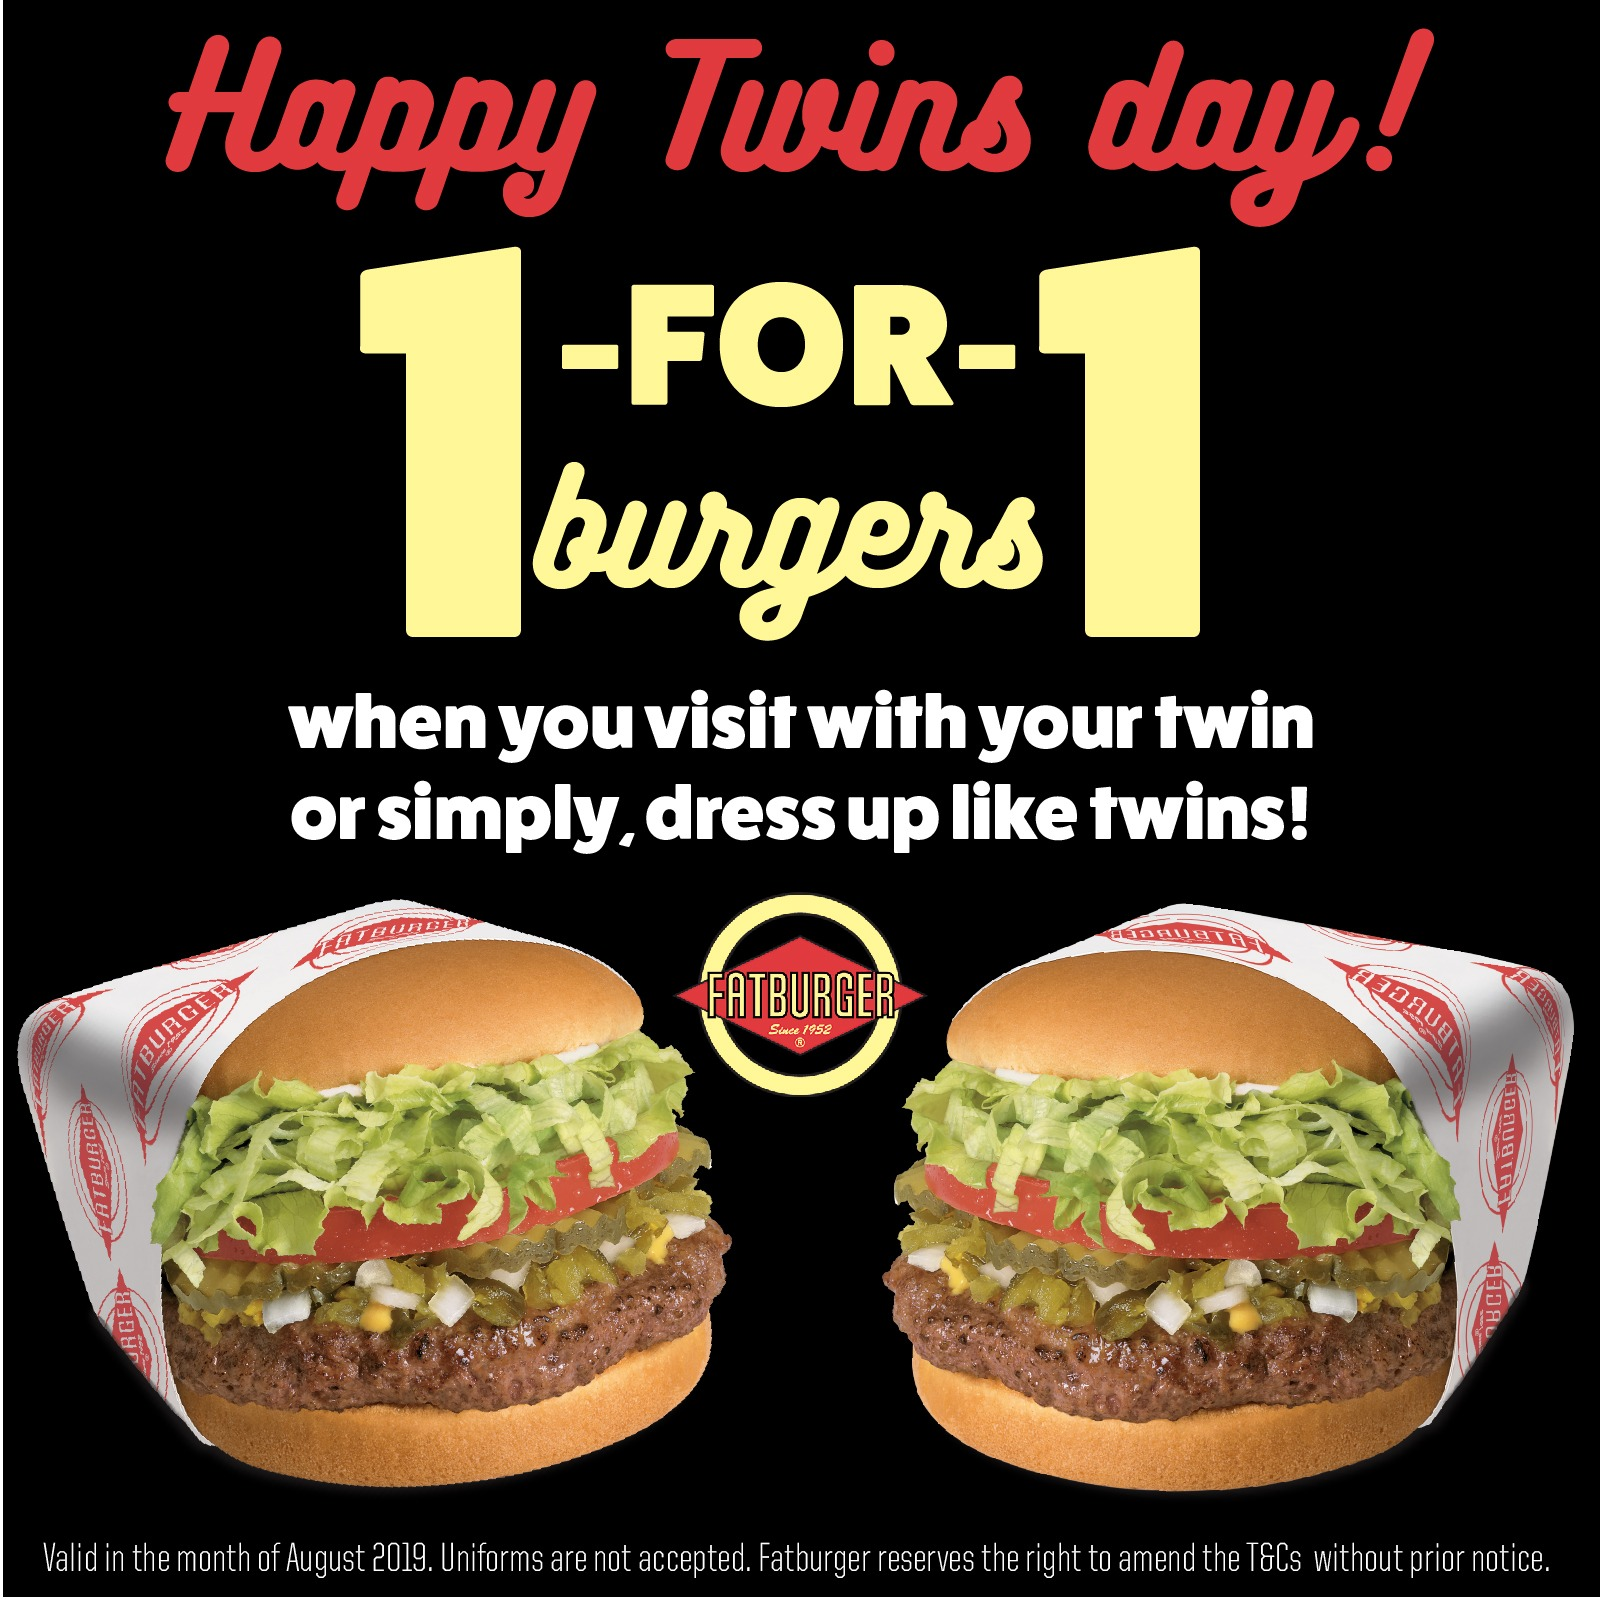 Fatburger Singapore Celebrates Twins Day with 1-for-1 Burgers Promotion ends 31 Aug 2019 | Why Not Deals & Promotions